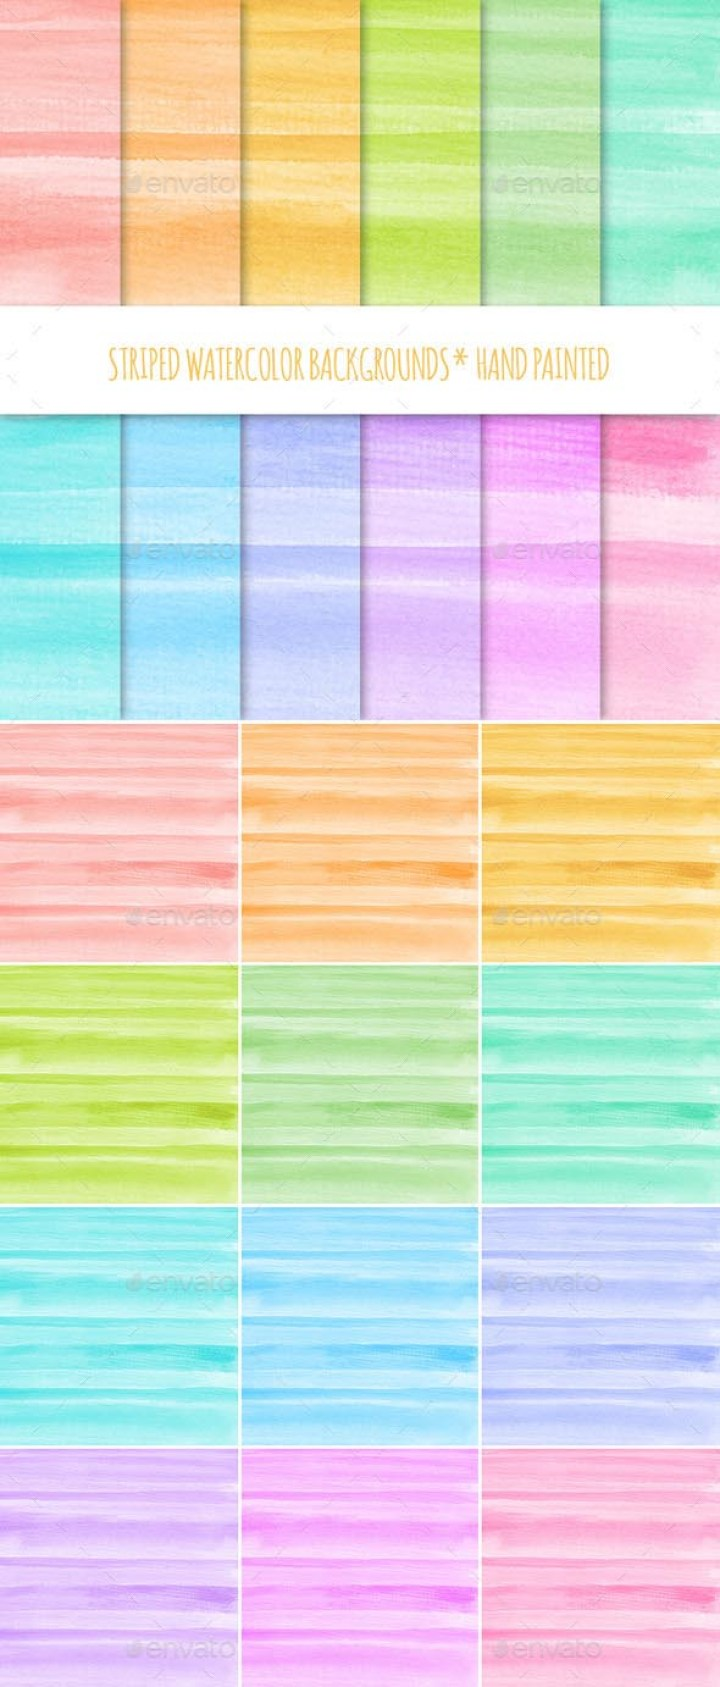 12 Watercolor Texture Backgrounds